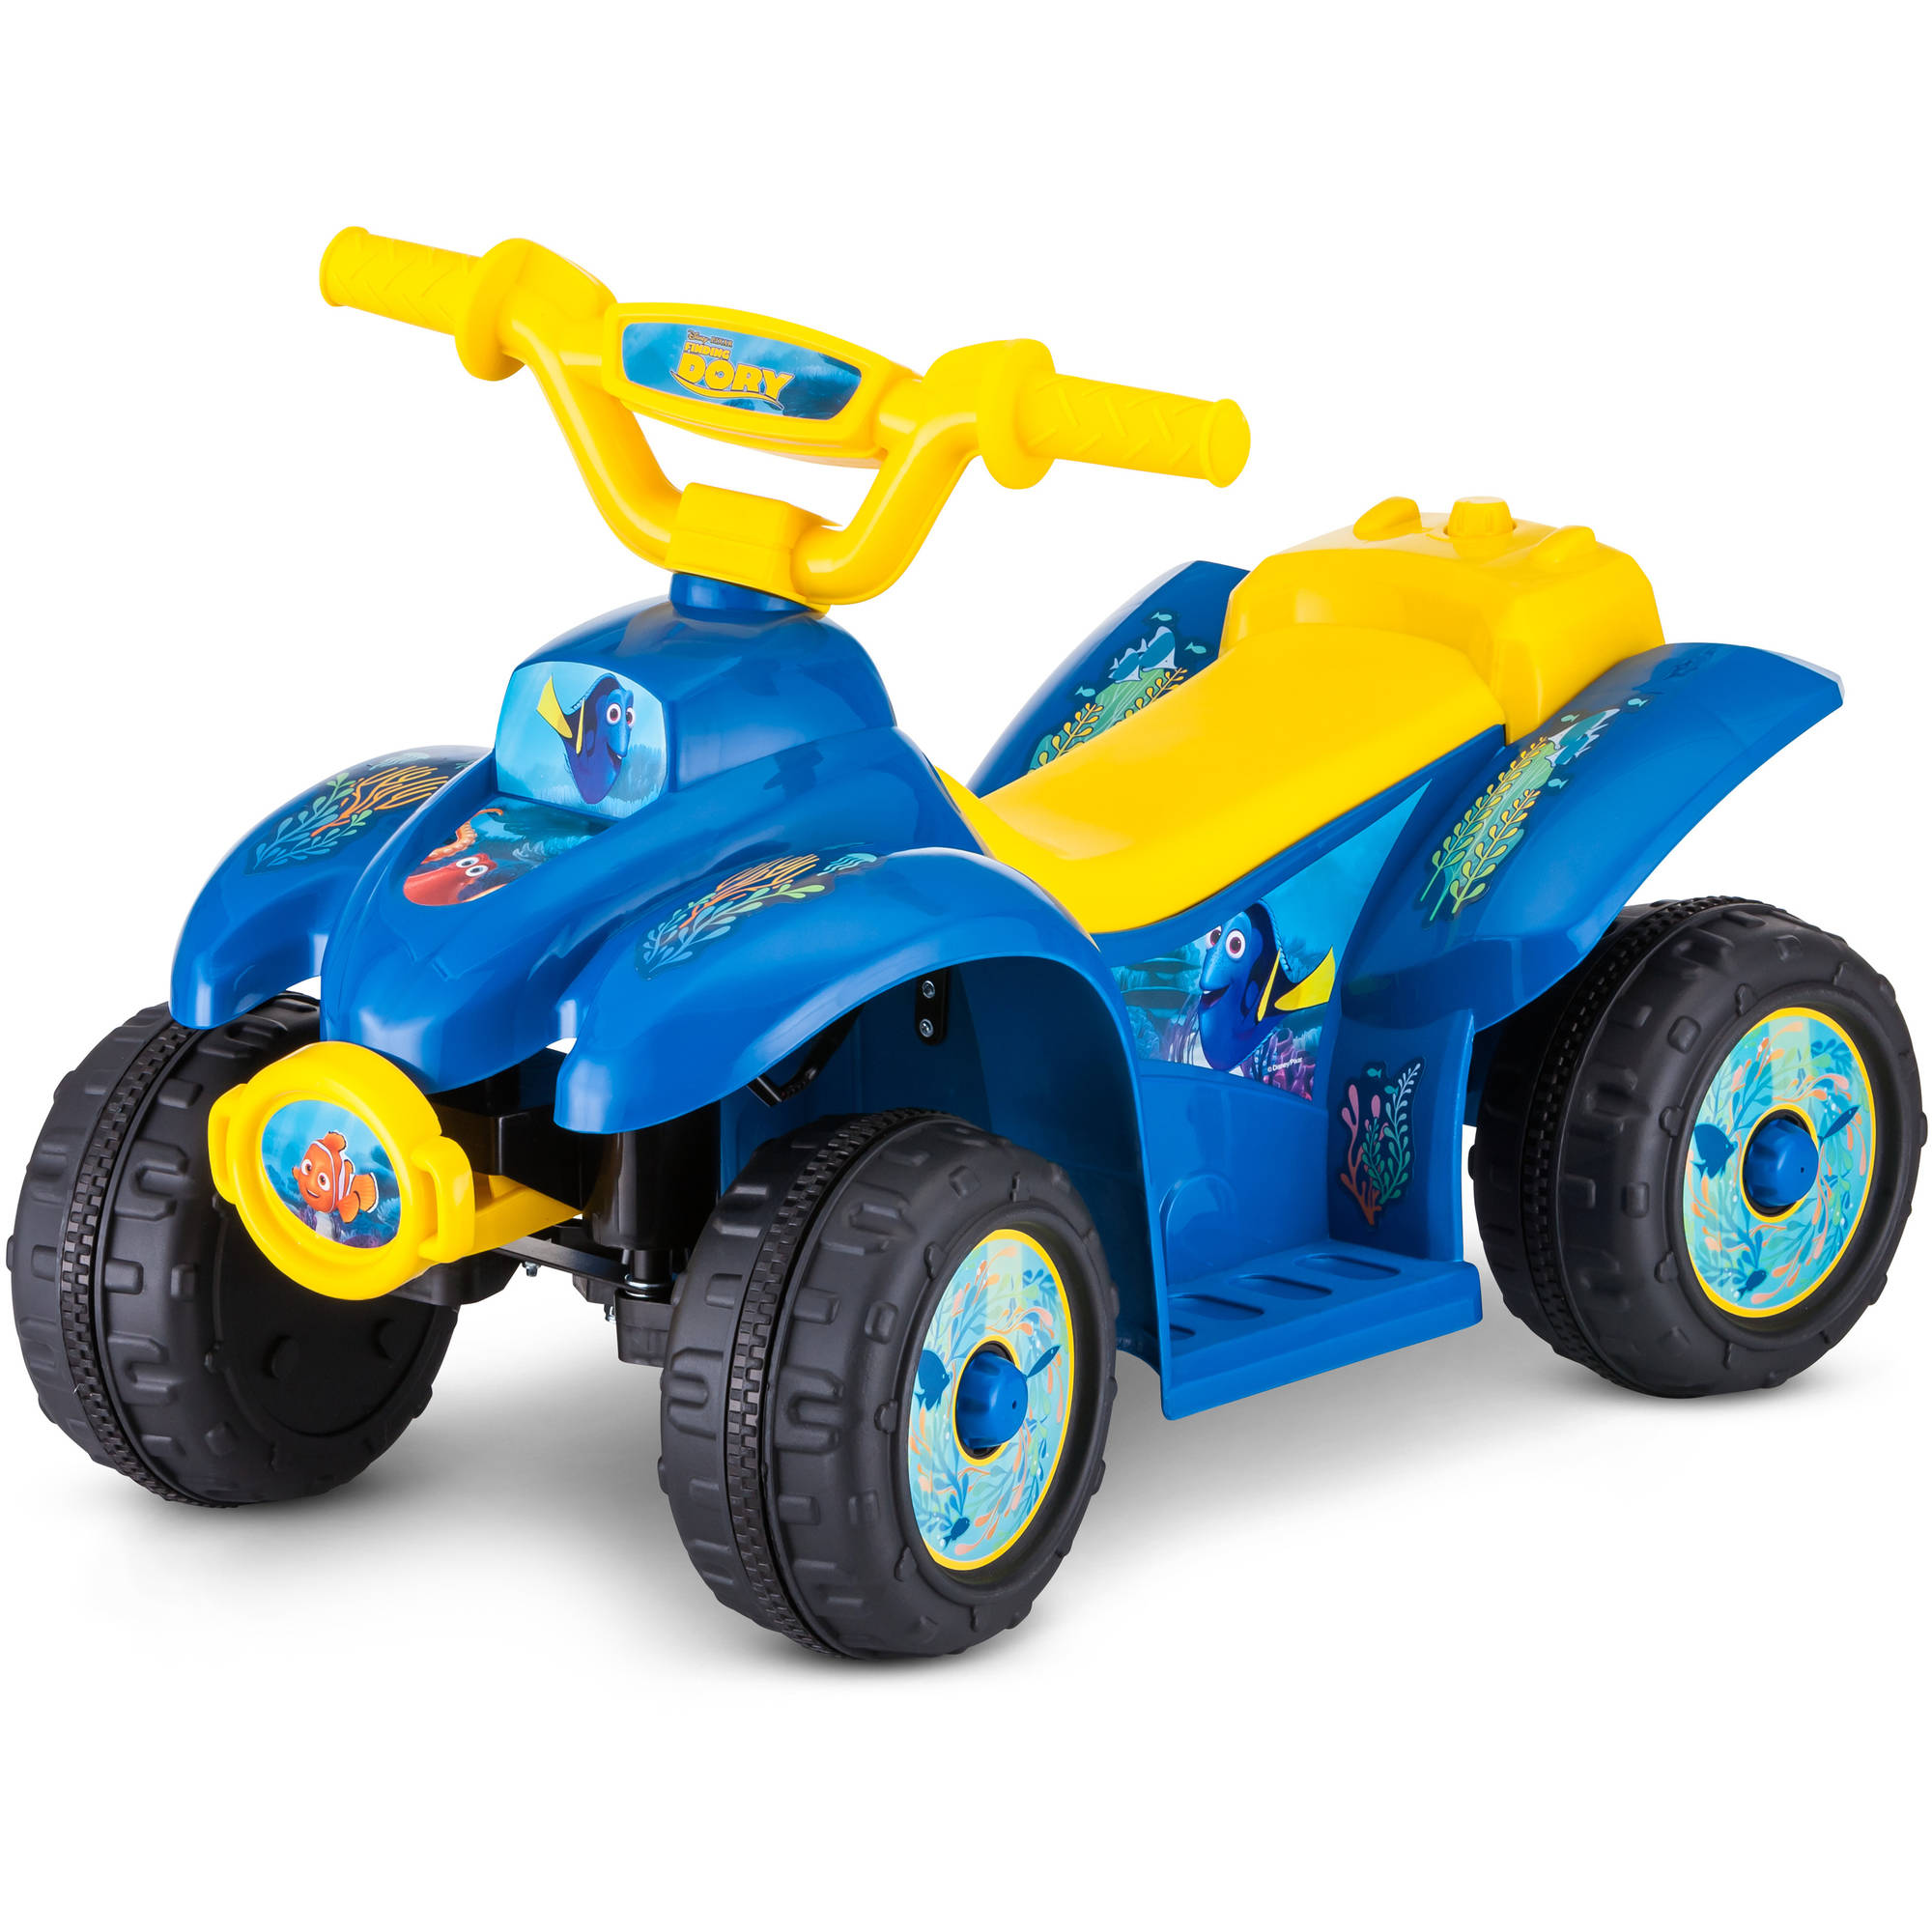 Disney Finding Dory 6V Toddler Quad Ride On